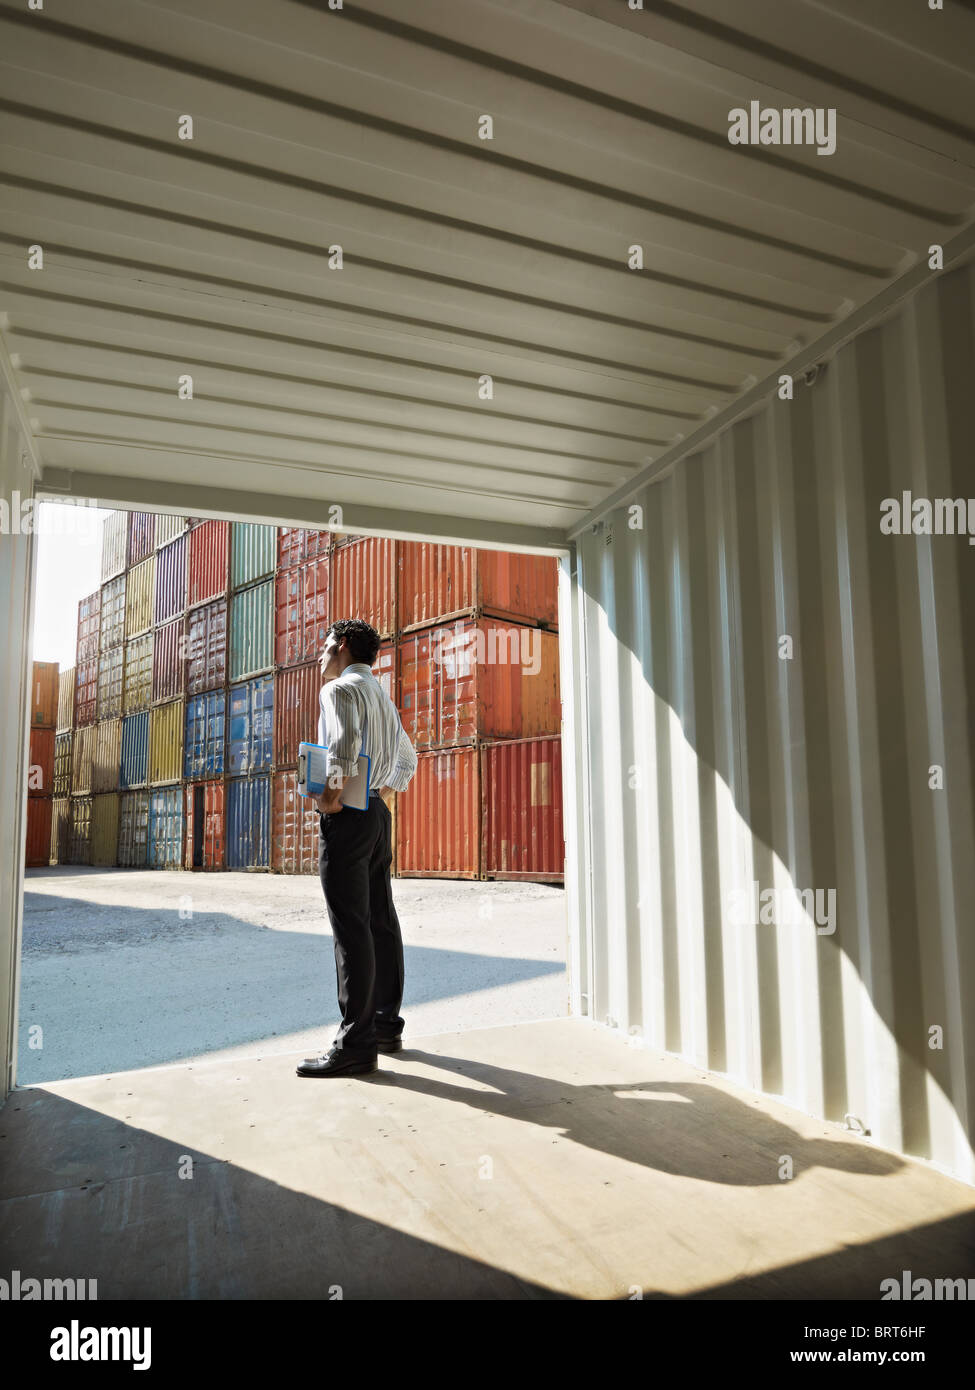 portrait of mid adult businessman standing near cargo container. Vertical shape, side view, copy space - Stock Image